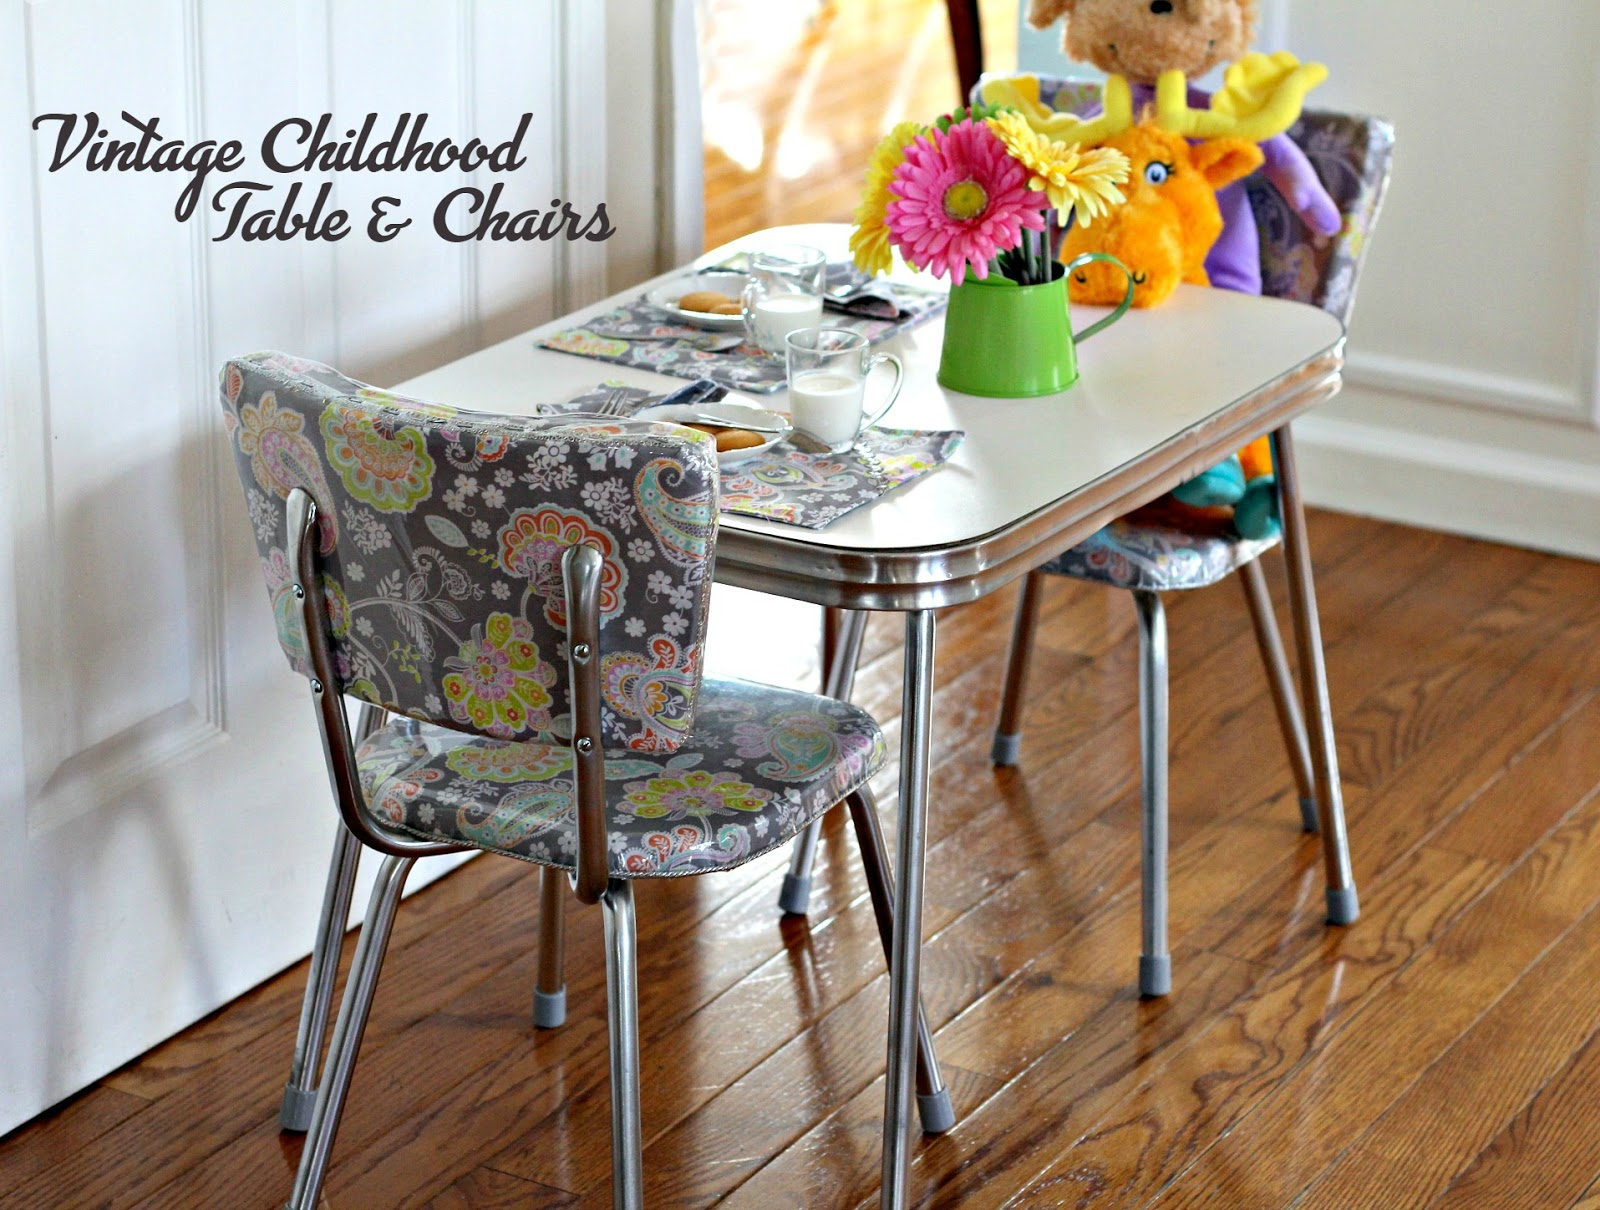 Vintage Table And Chairs Unfinished Dining Chair Childhood Chrome Restoration Grateful Restoring My Was A Labor Of Love This Sweet